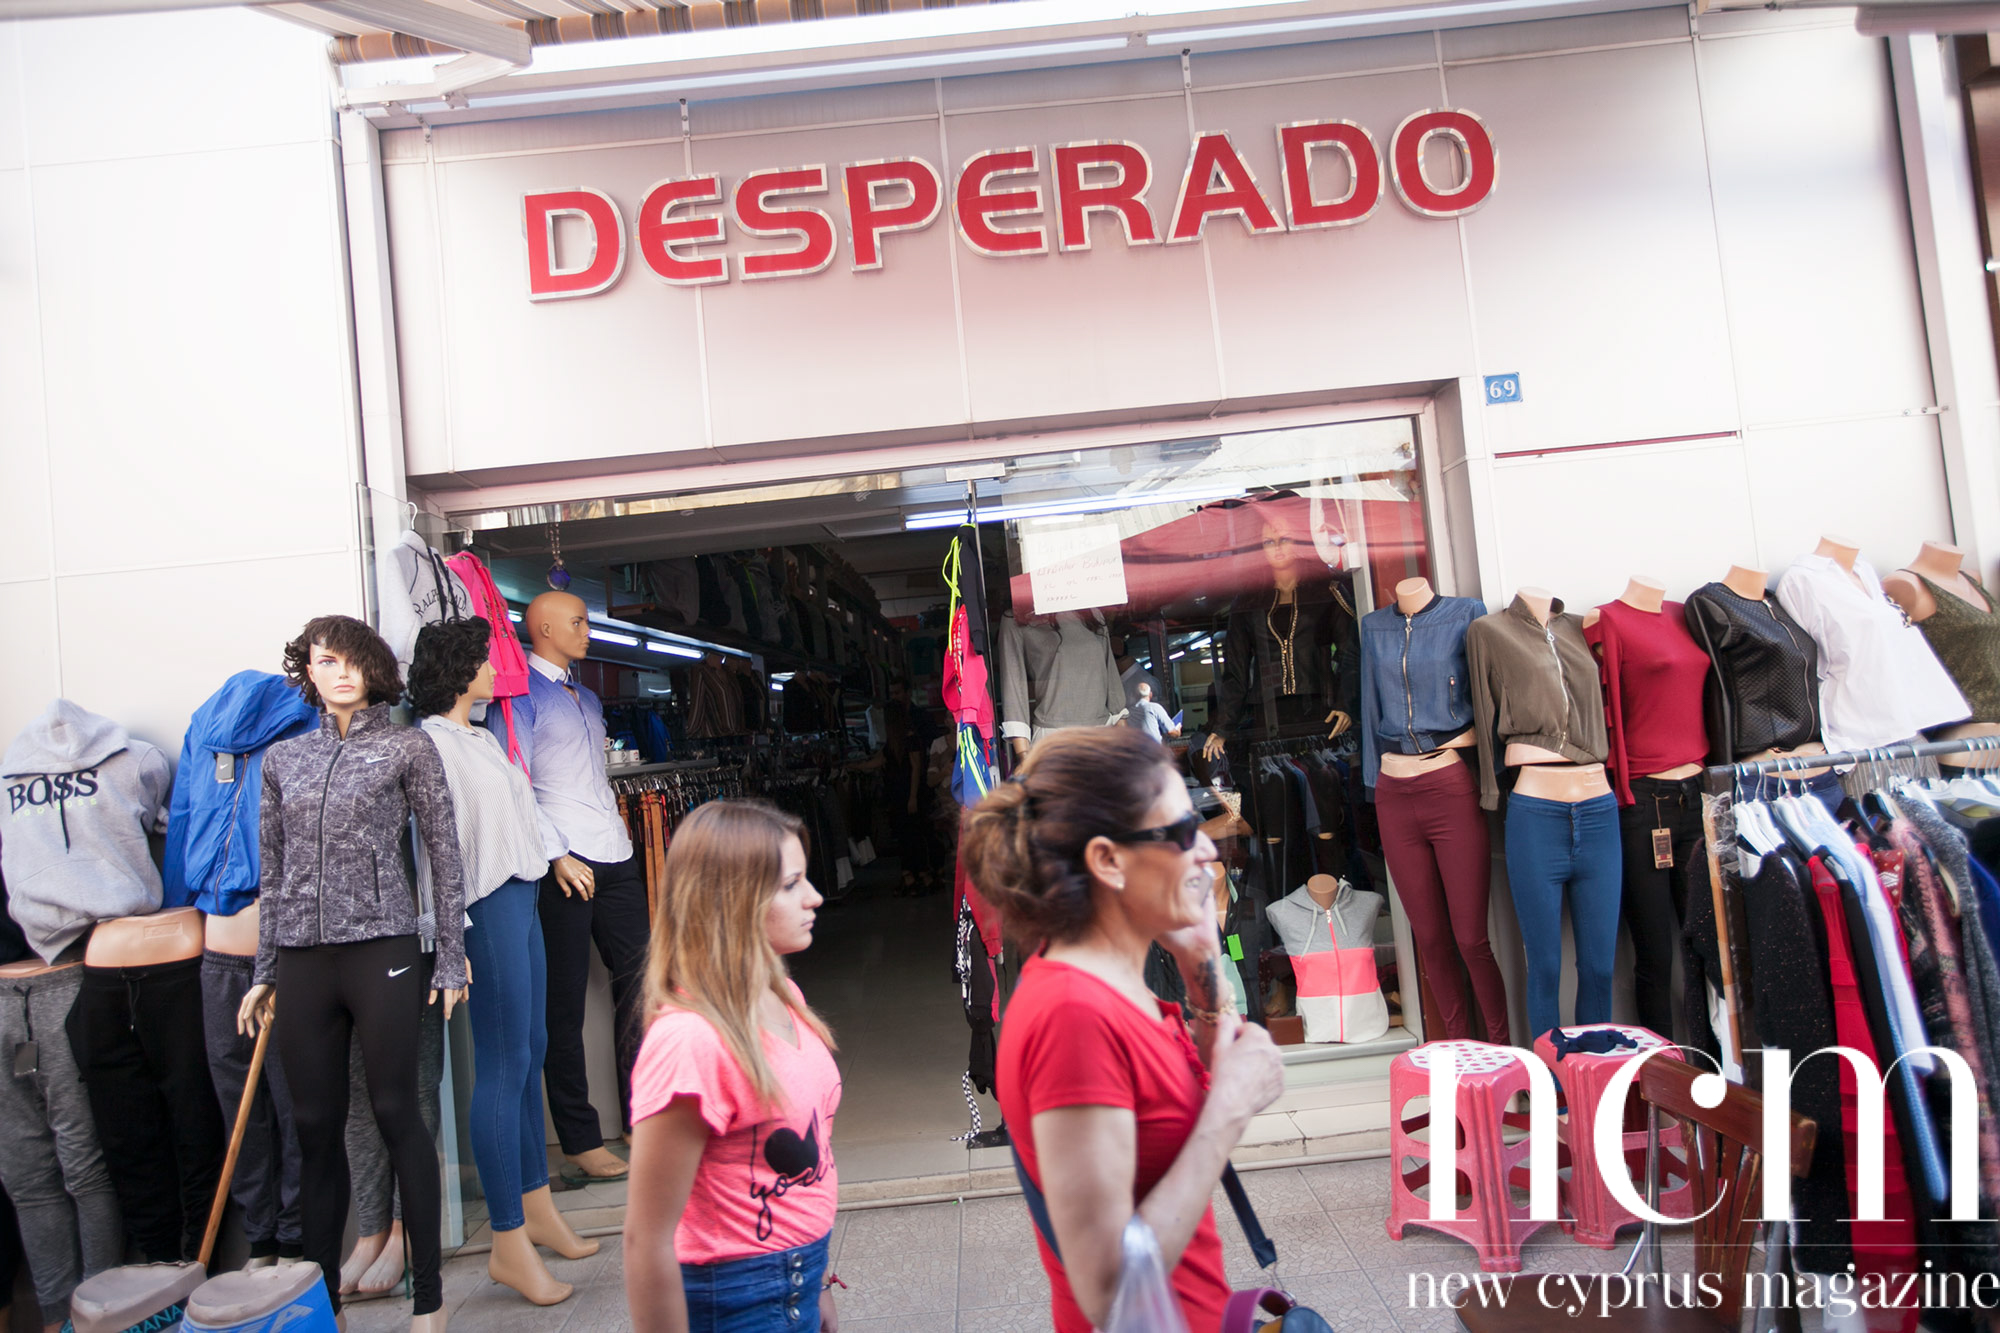 Desperado clothing shop